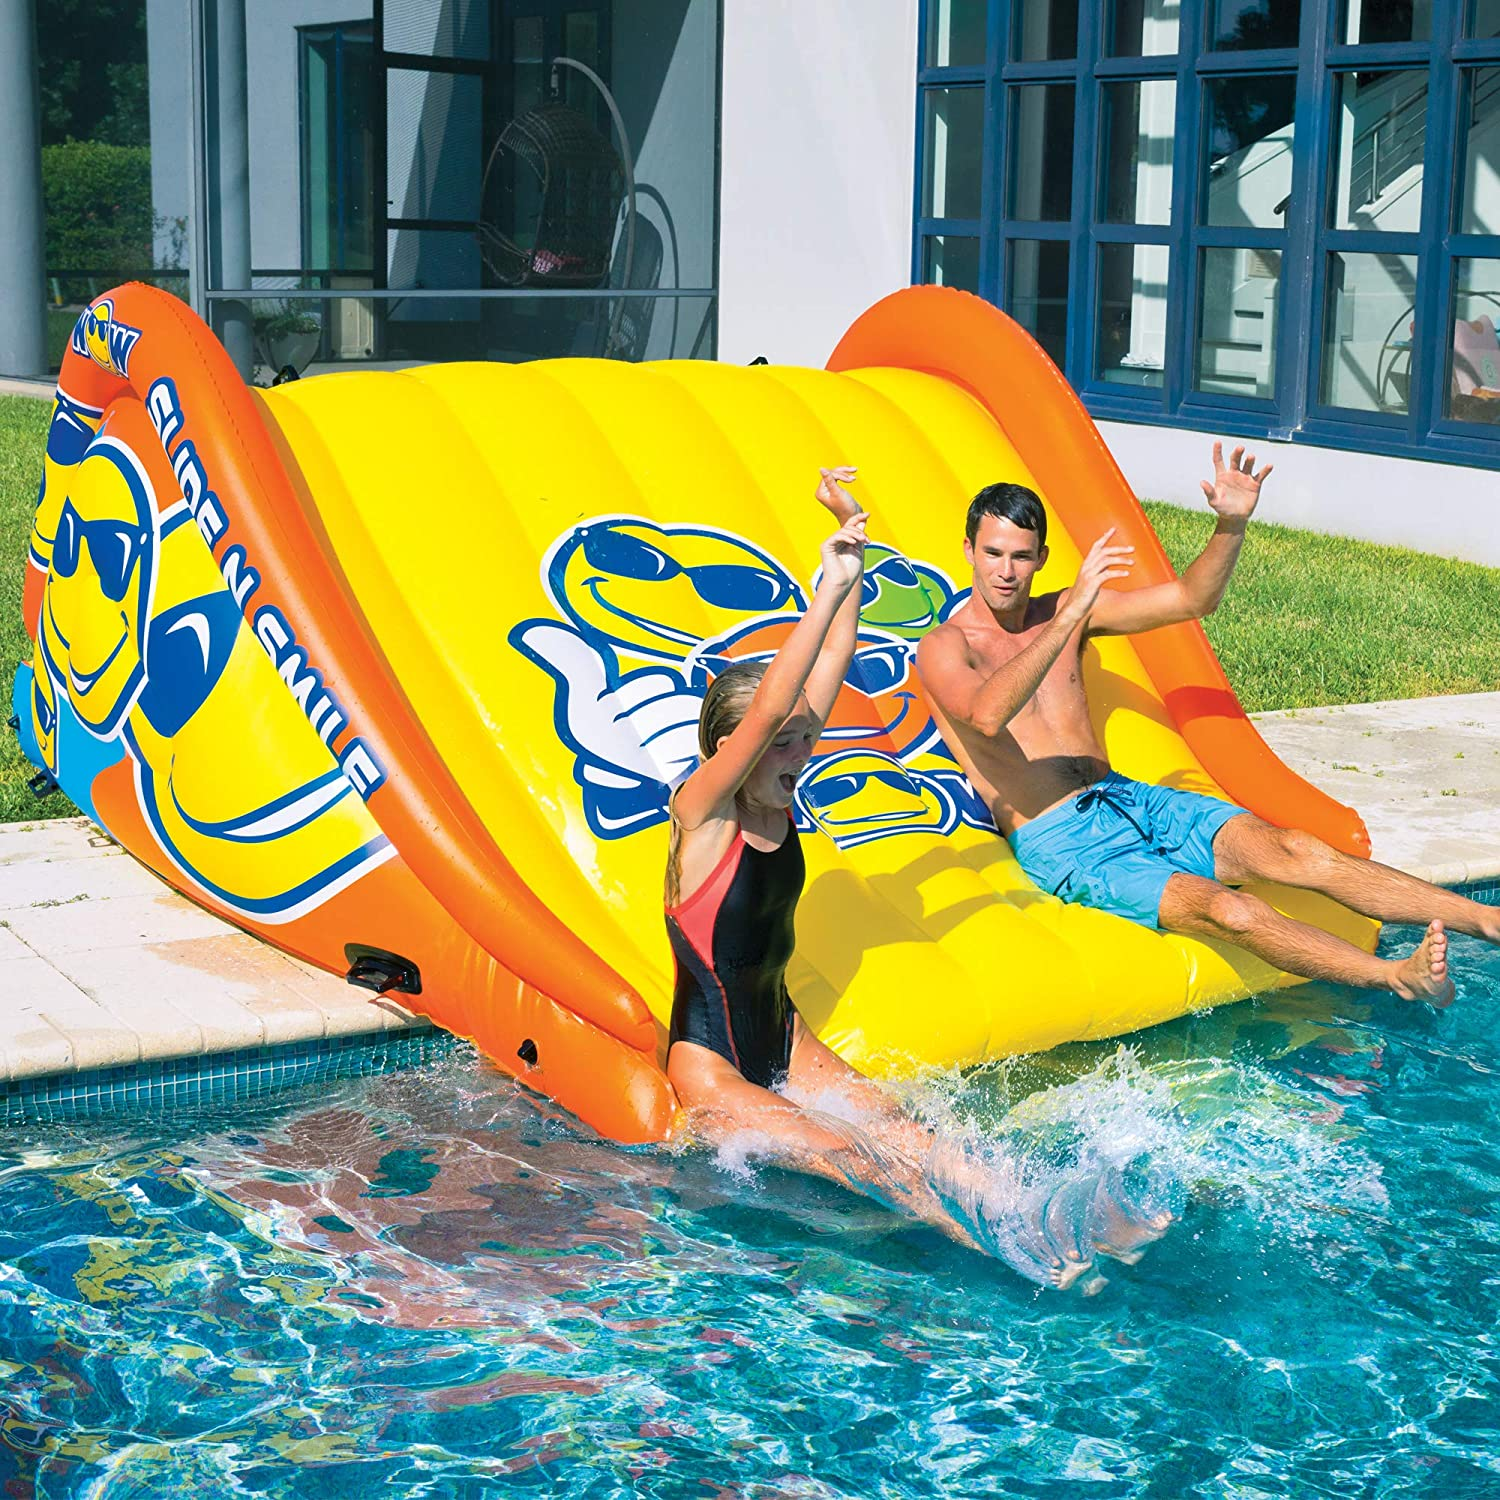 Top 11 Best Water Slide Pools Inflatable (2020 Reviews) 3